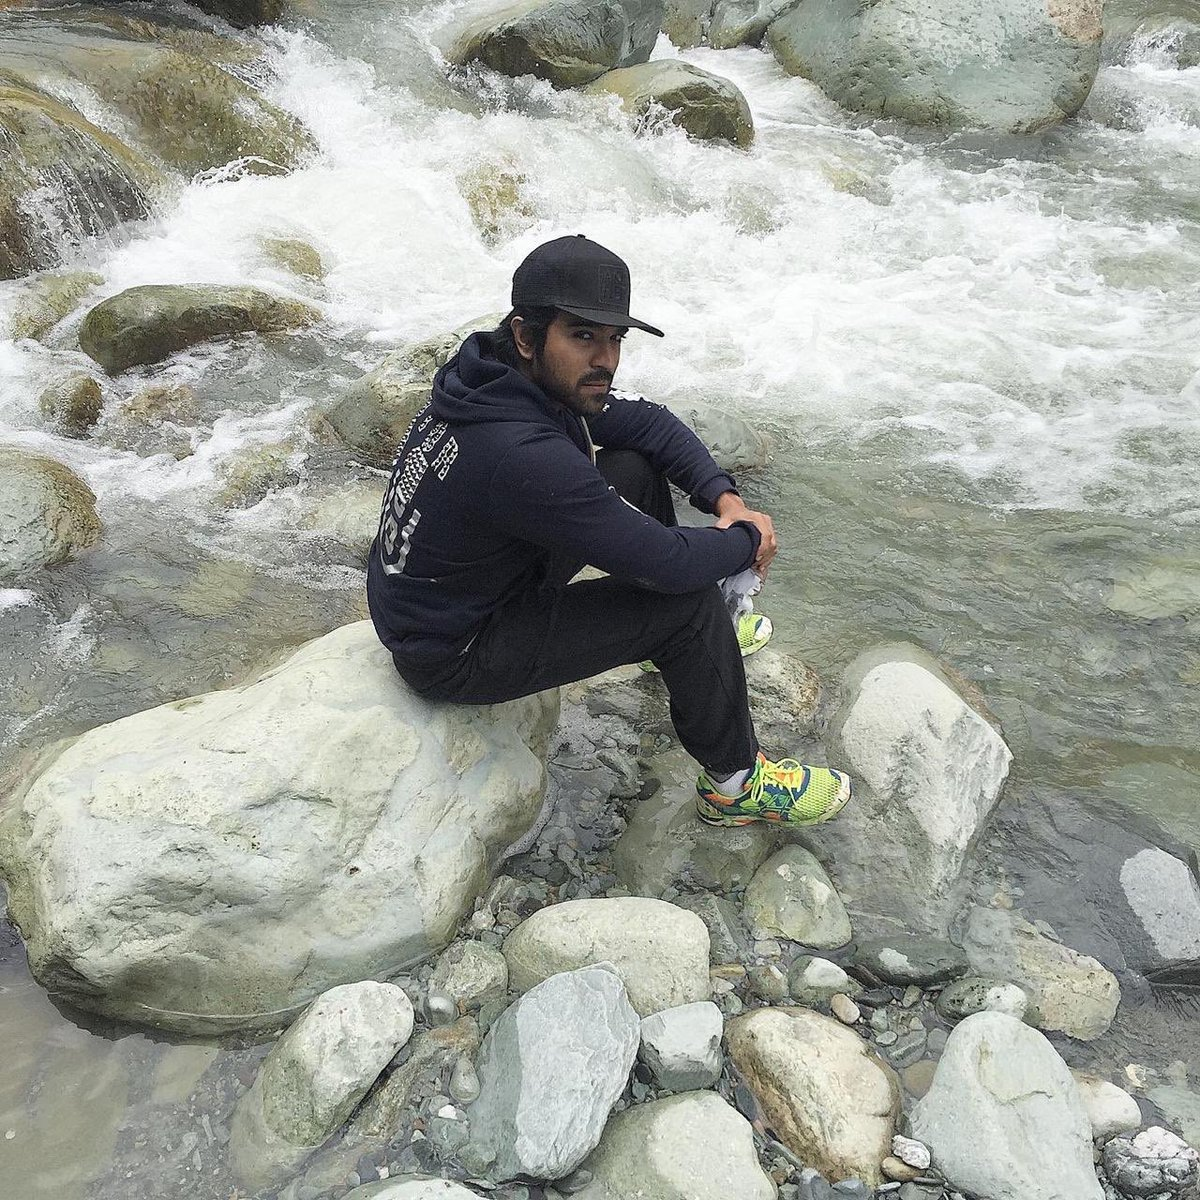 Throwback - In Haridwar. Right now going with the flow and hoping that things get back to normal. Stay safe.